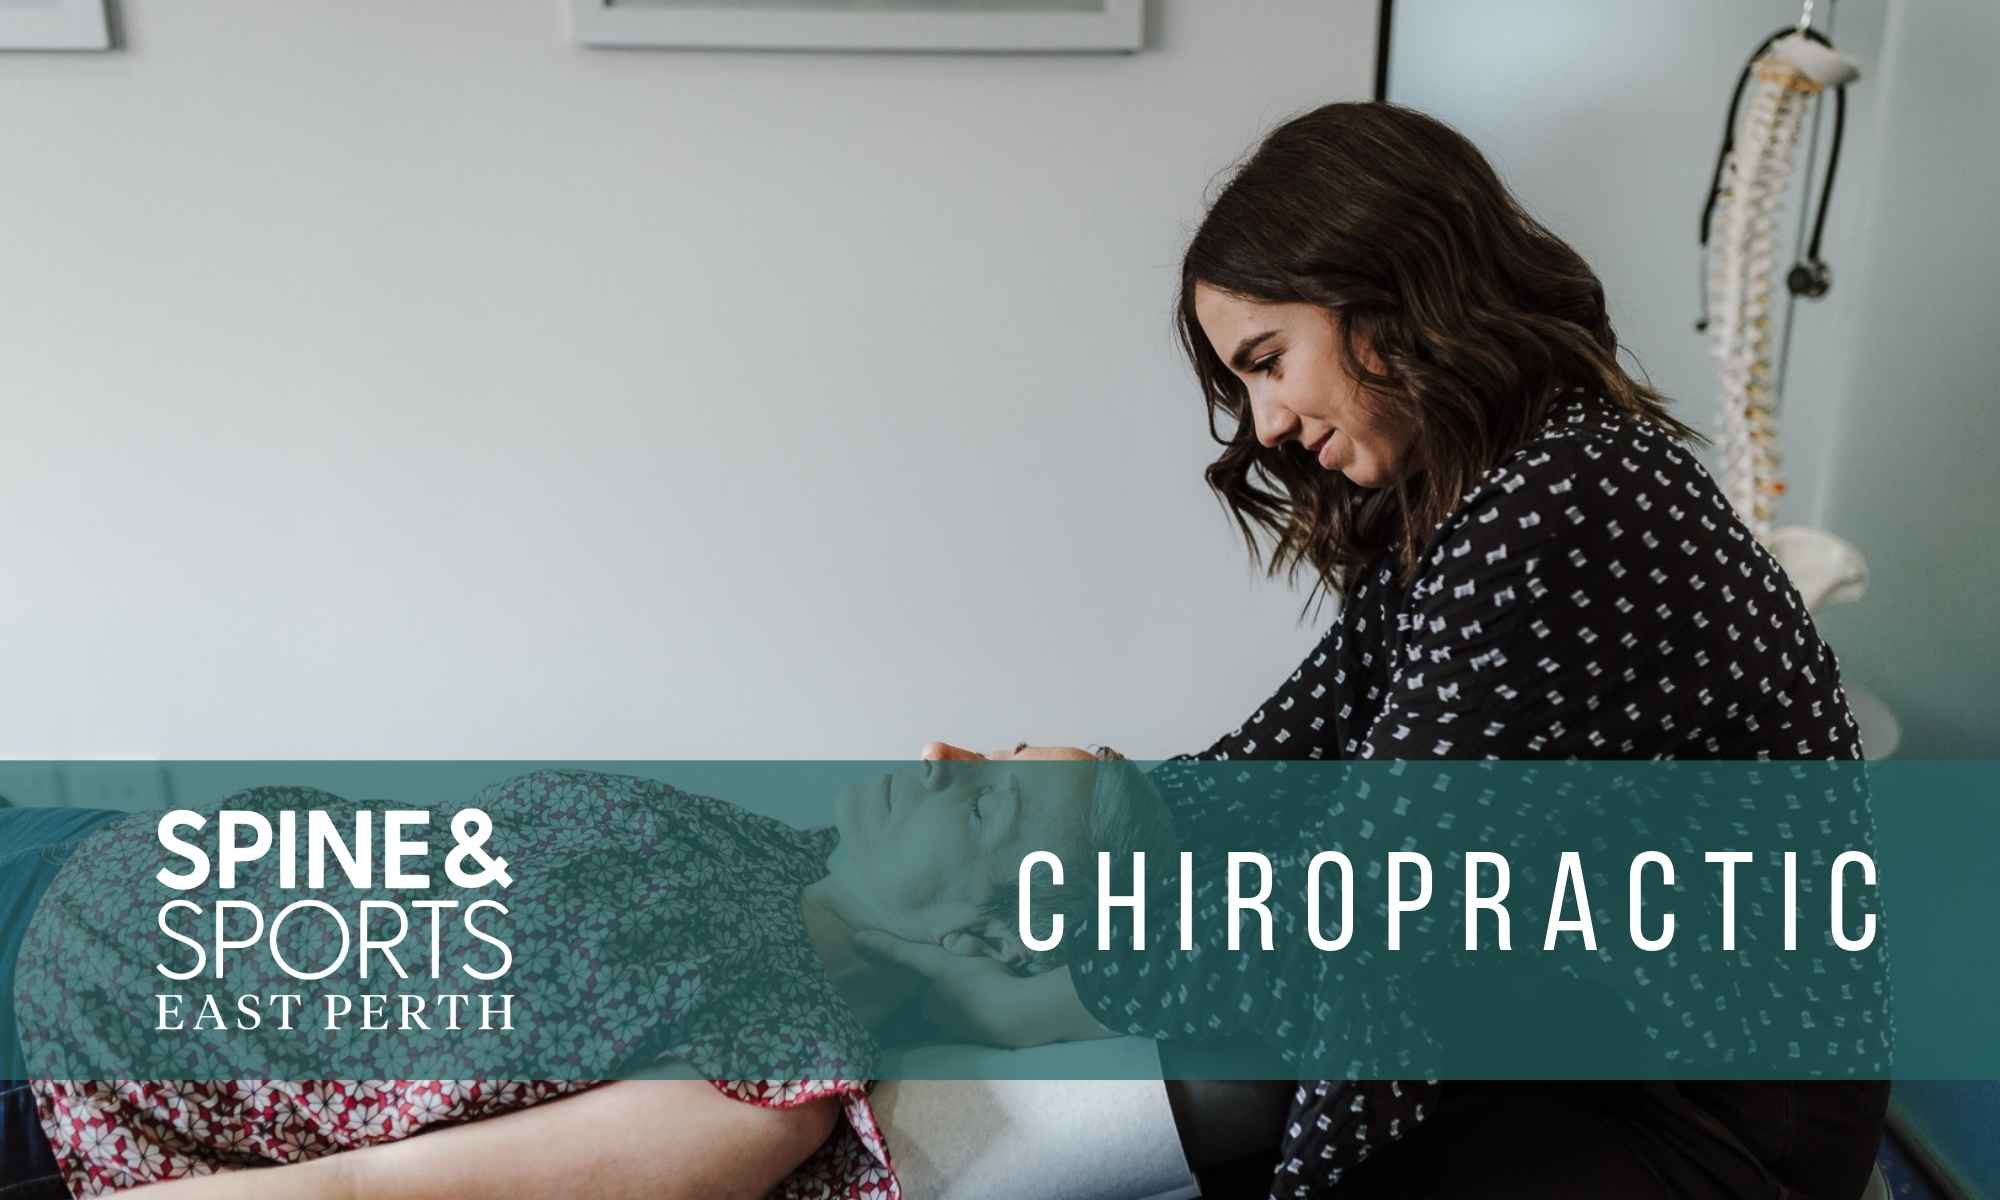 East Perth Chiropractic at Spine & Sports Centre.jpg